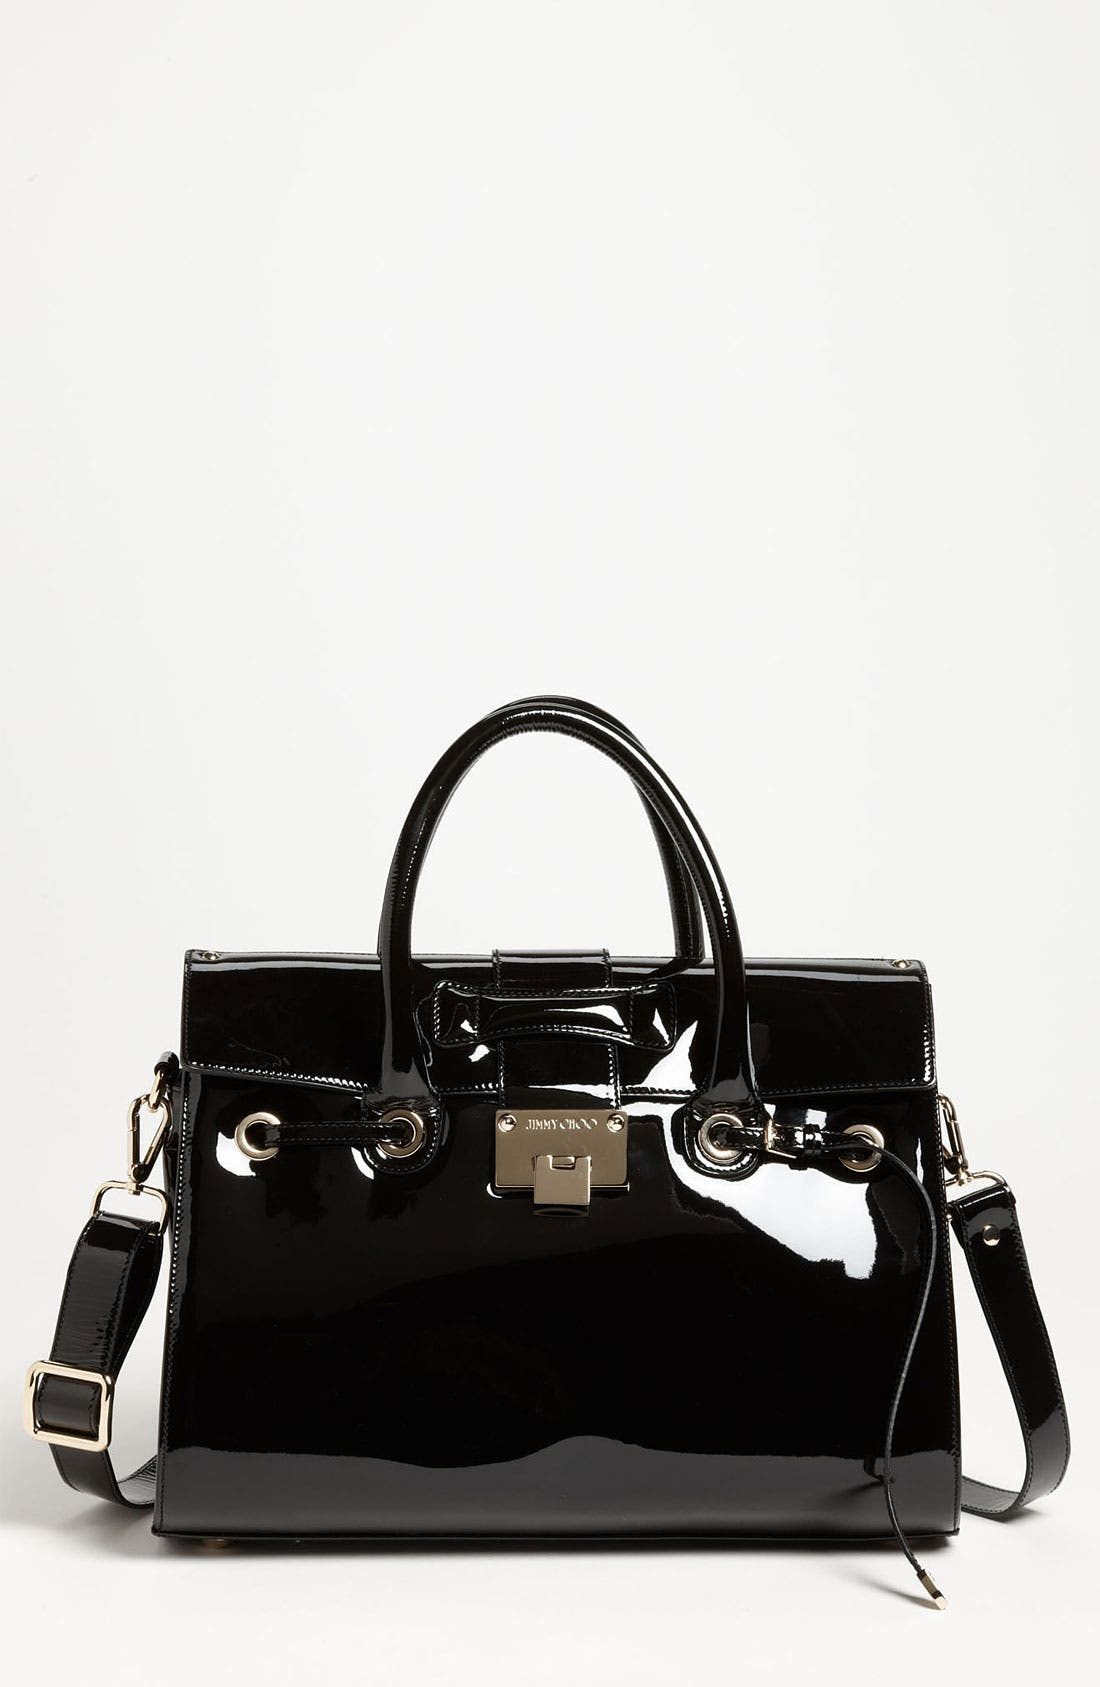 Alternate Image 1 Selected - Jimmy Choo 'Rosalie' Patent Leather Satchel